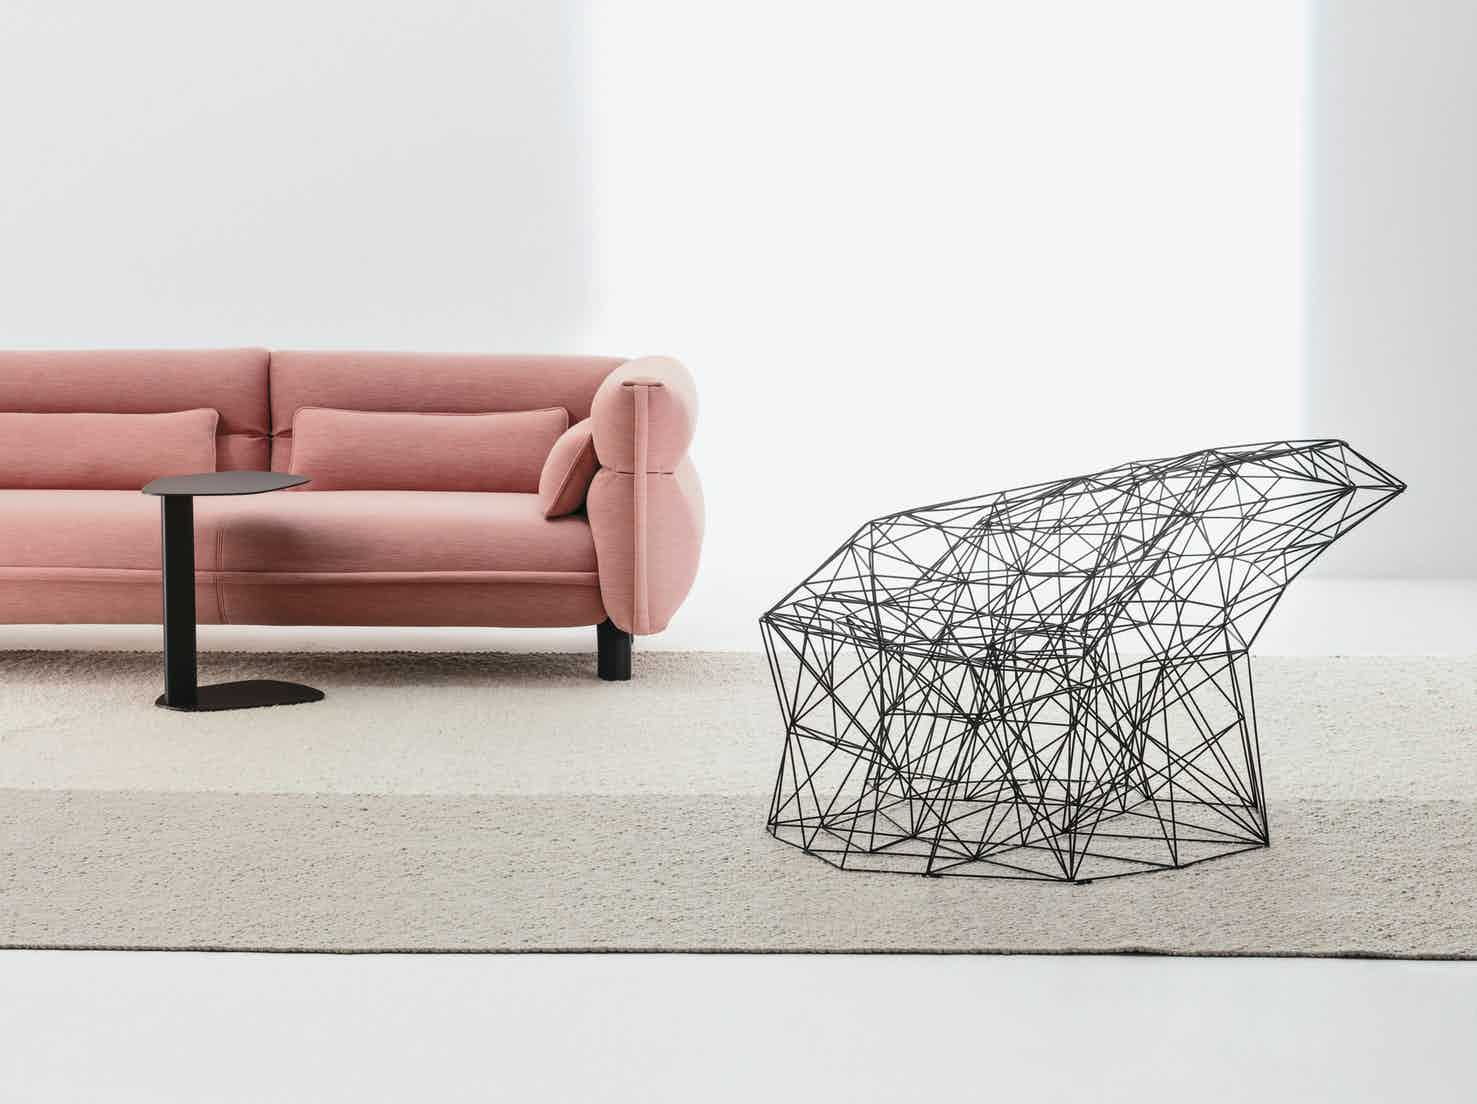 Filinea armchair by la cividina at haute living